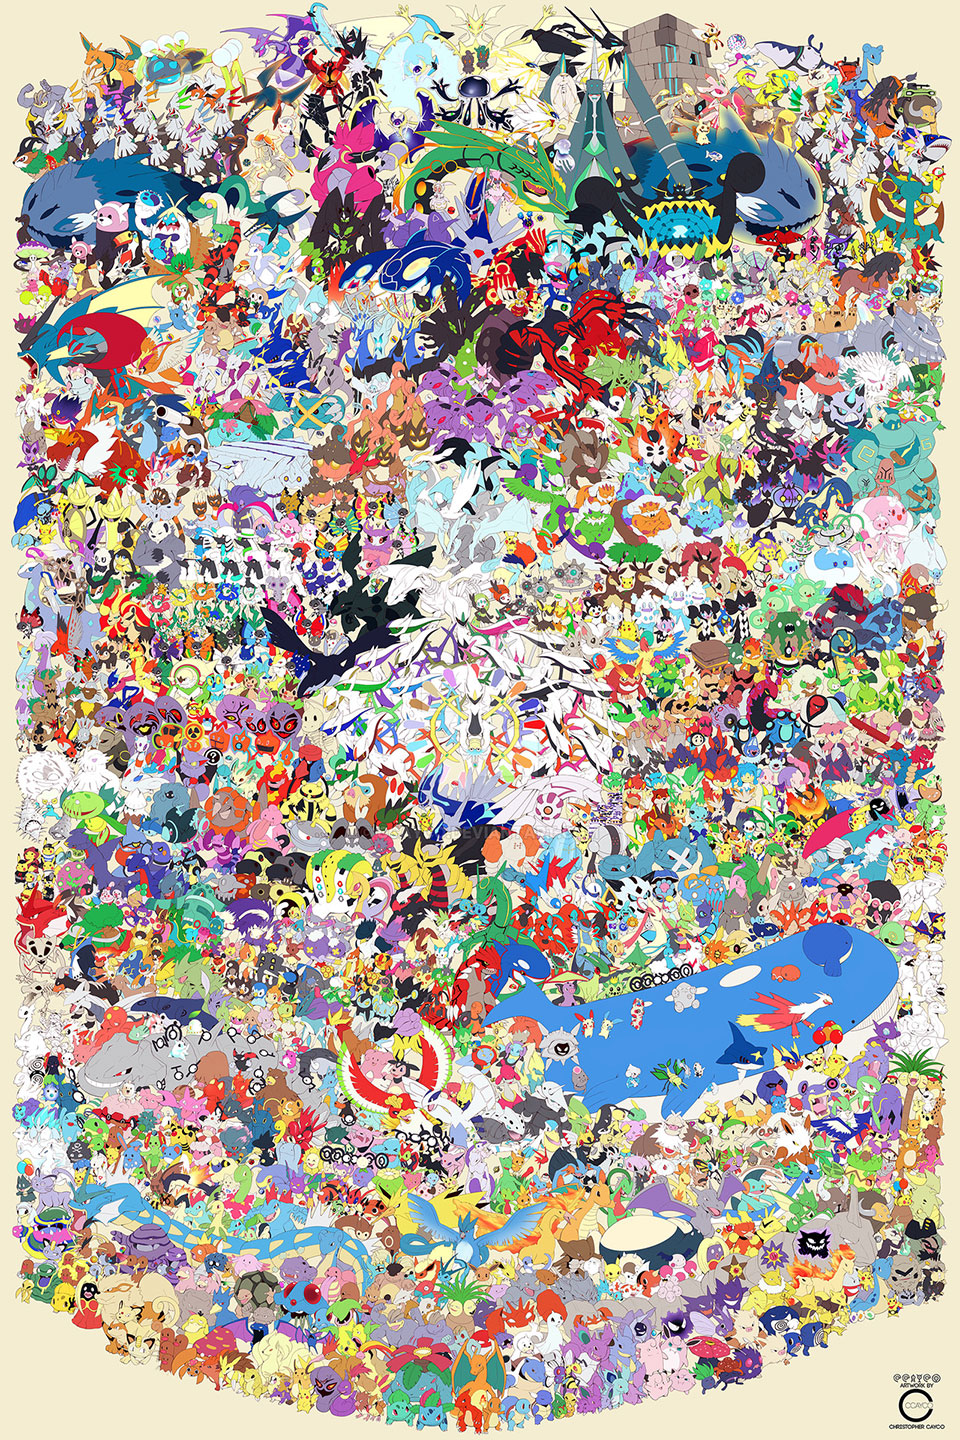 Pokémon Draw 'Em All! Poster